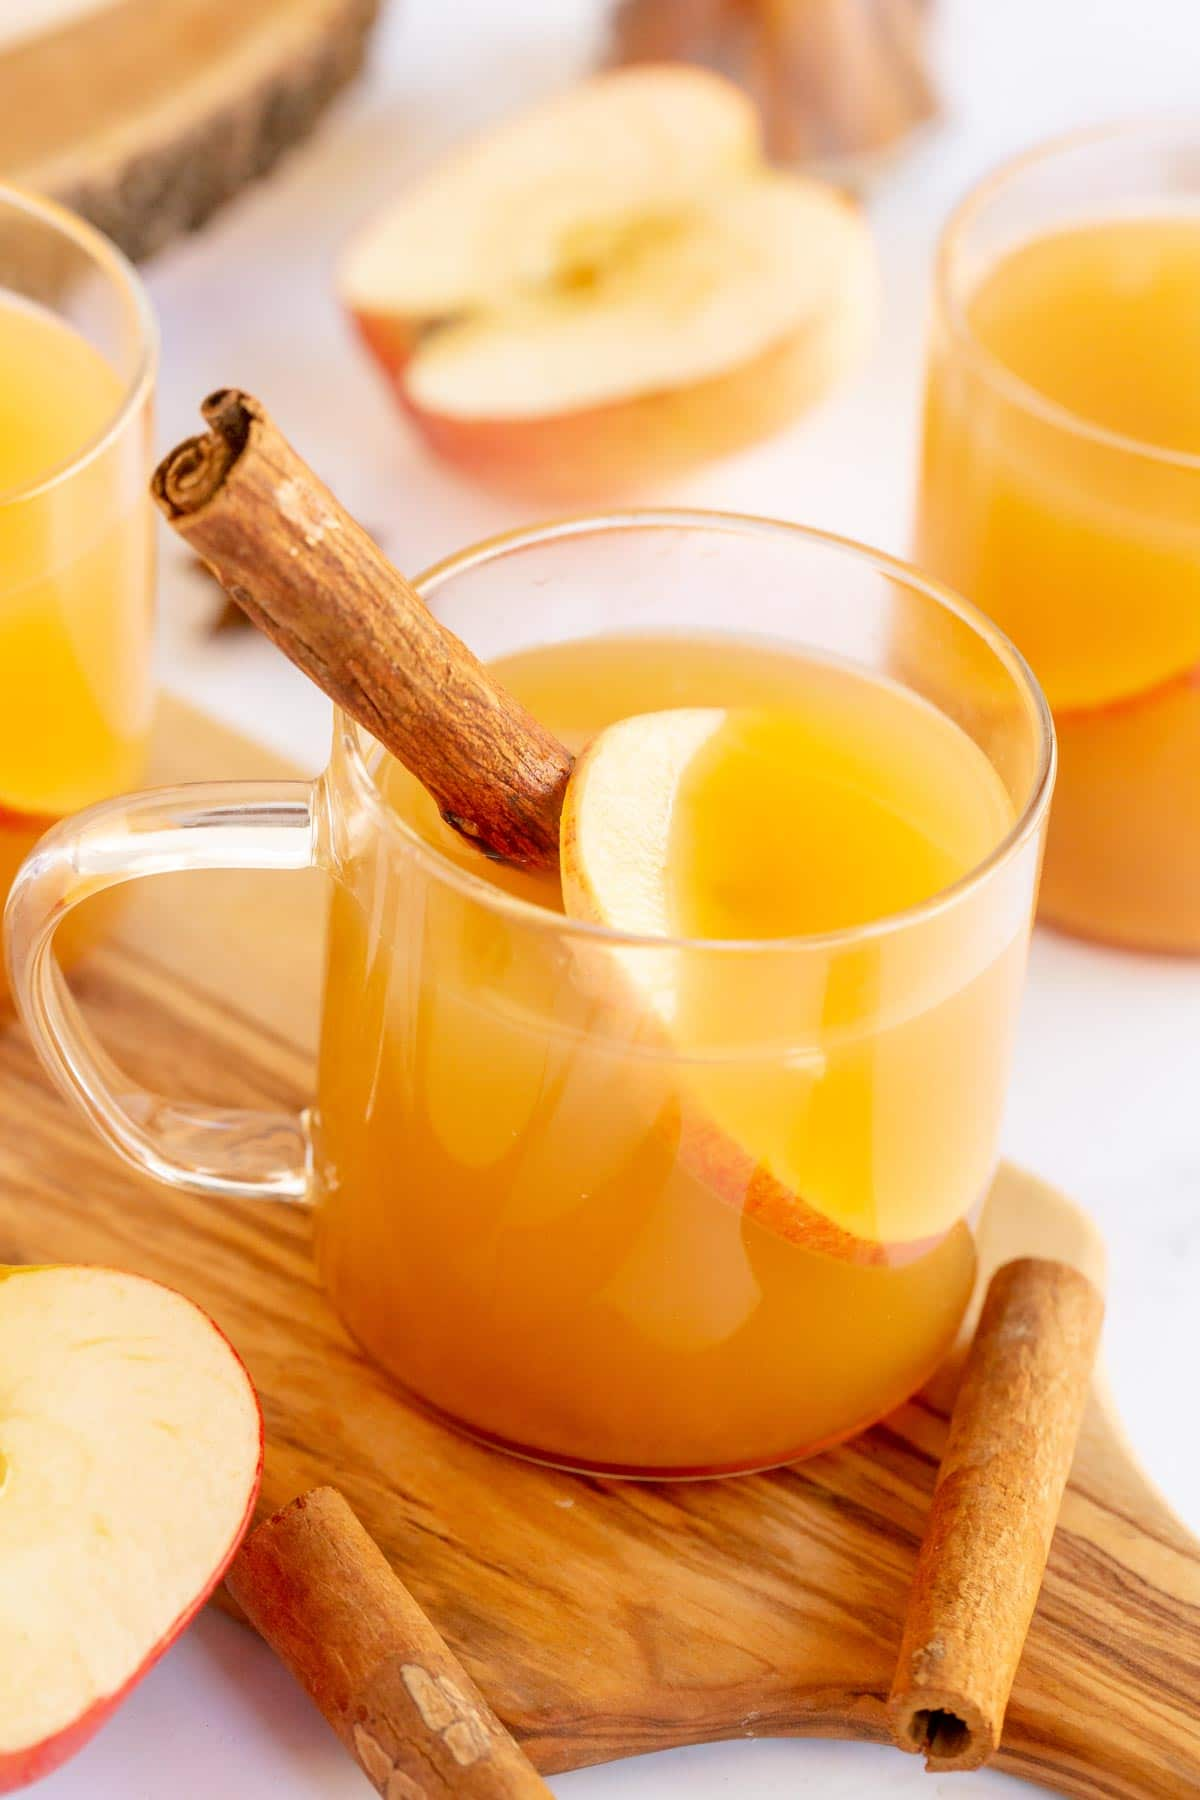 Glass of spiced apple cider